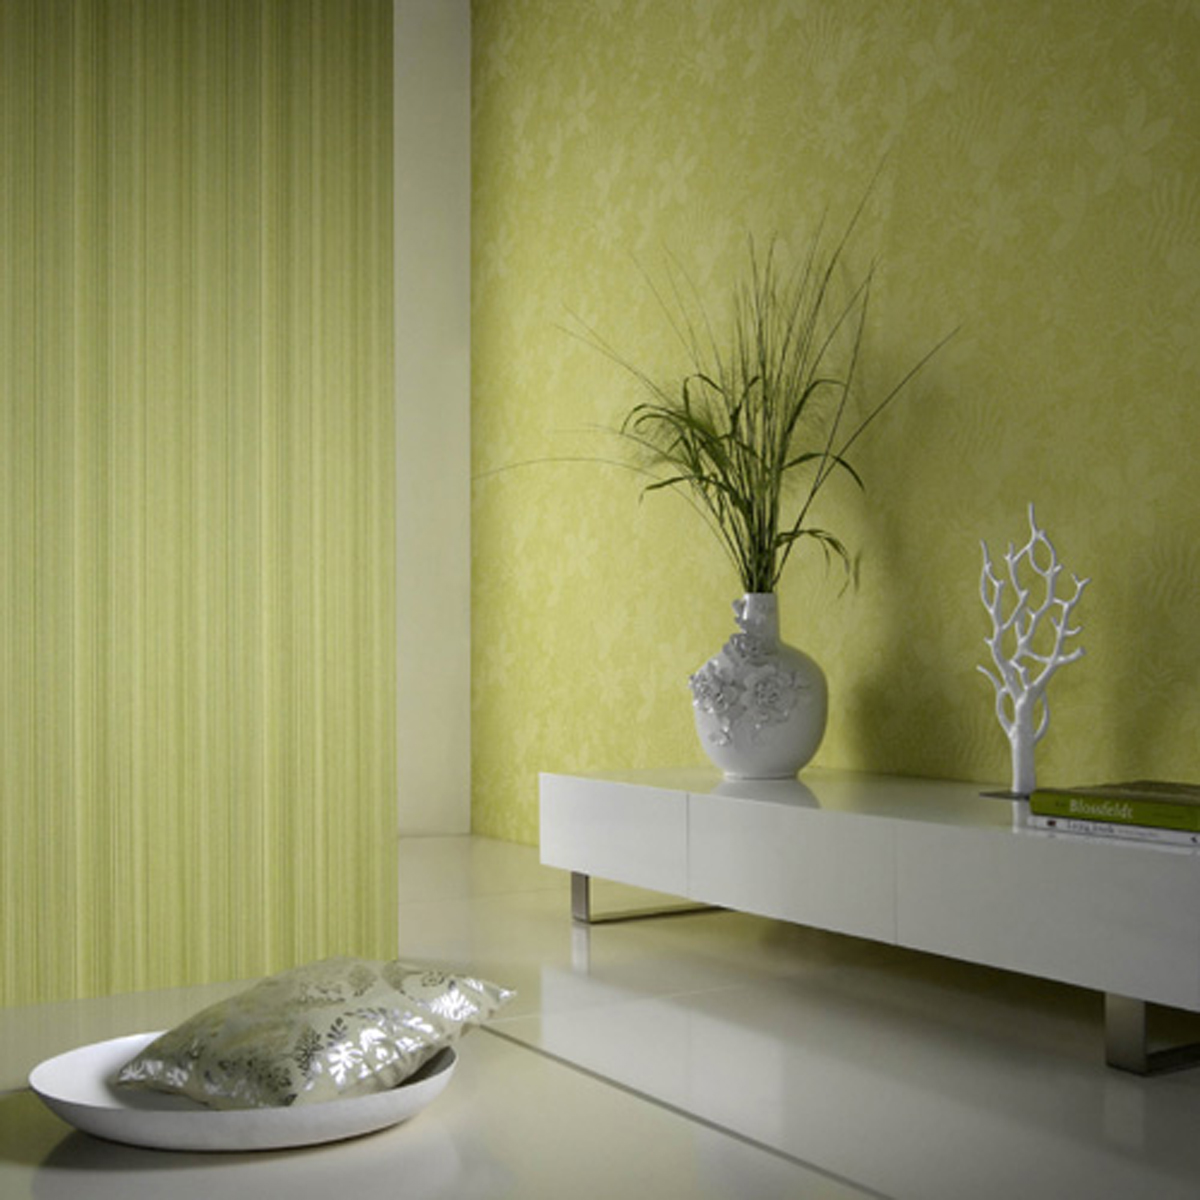 Attractive Textured Walls Ideas Image Collection - Art & Wall Decor ...